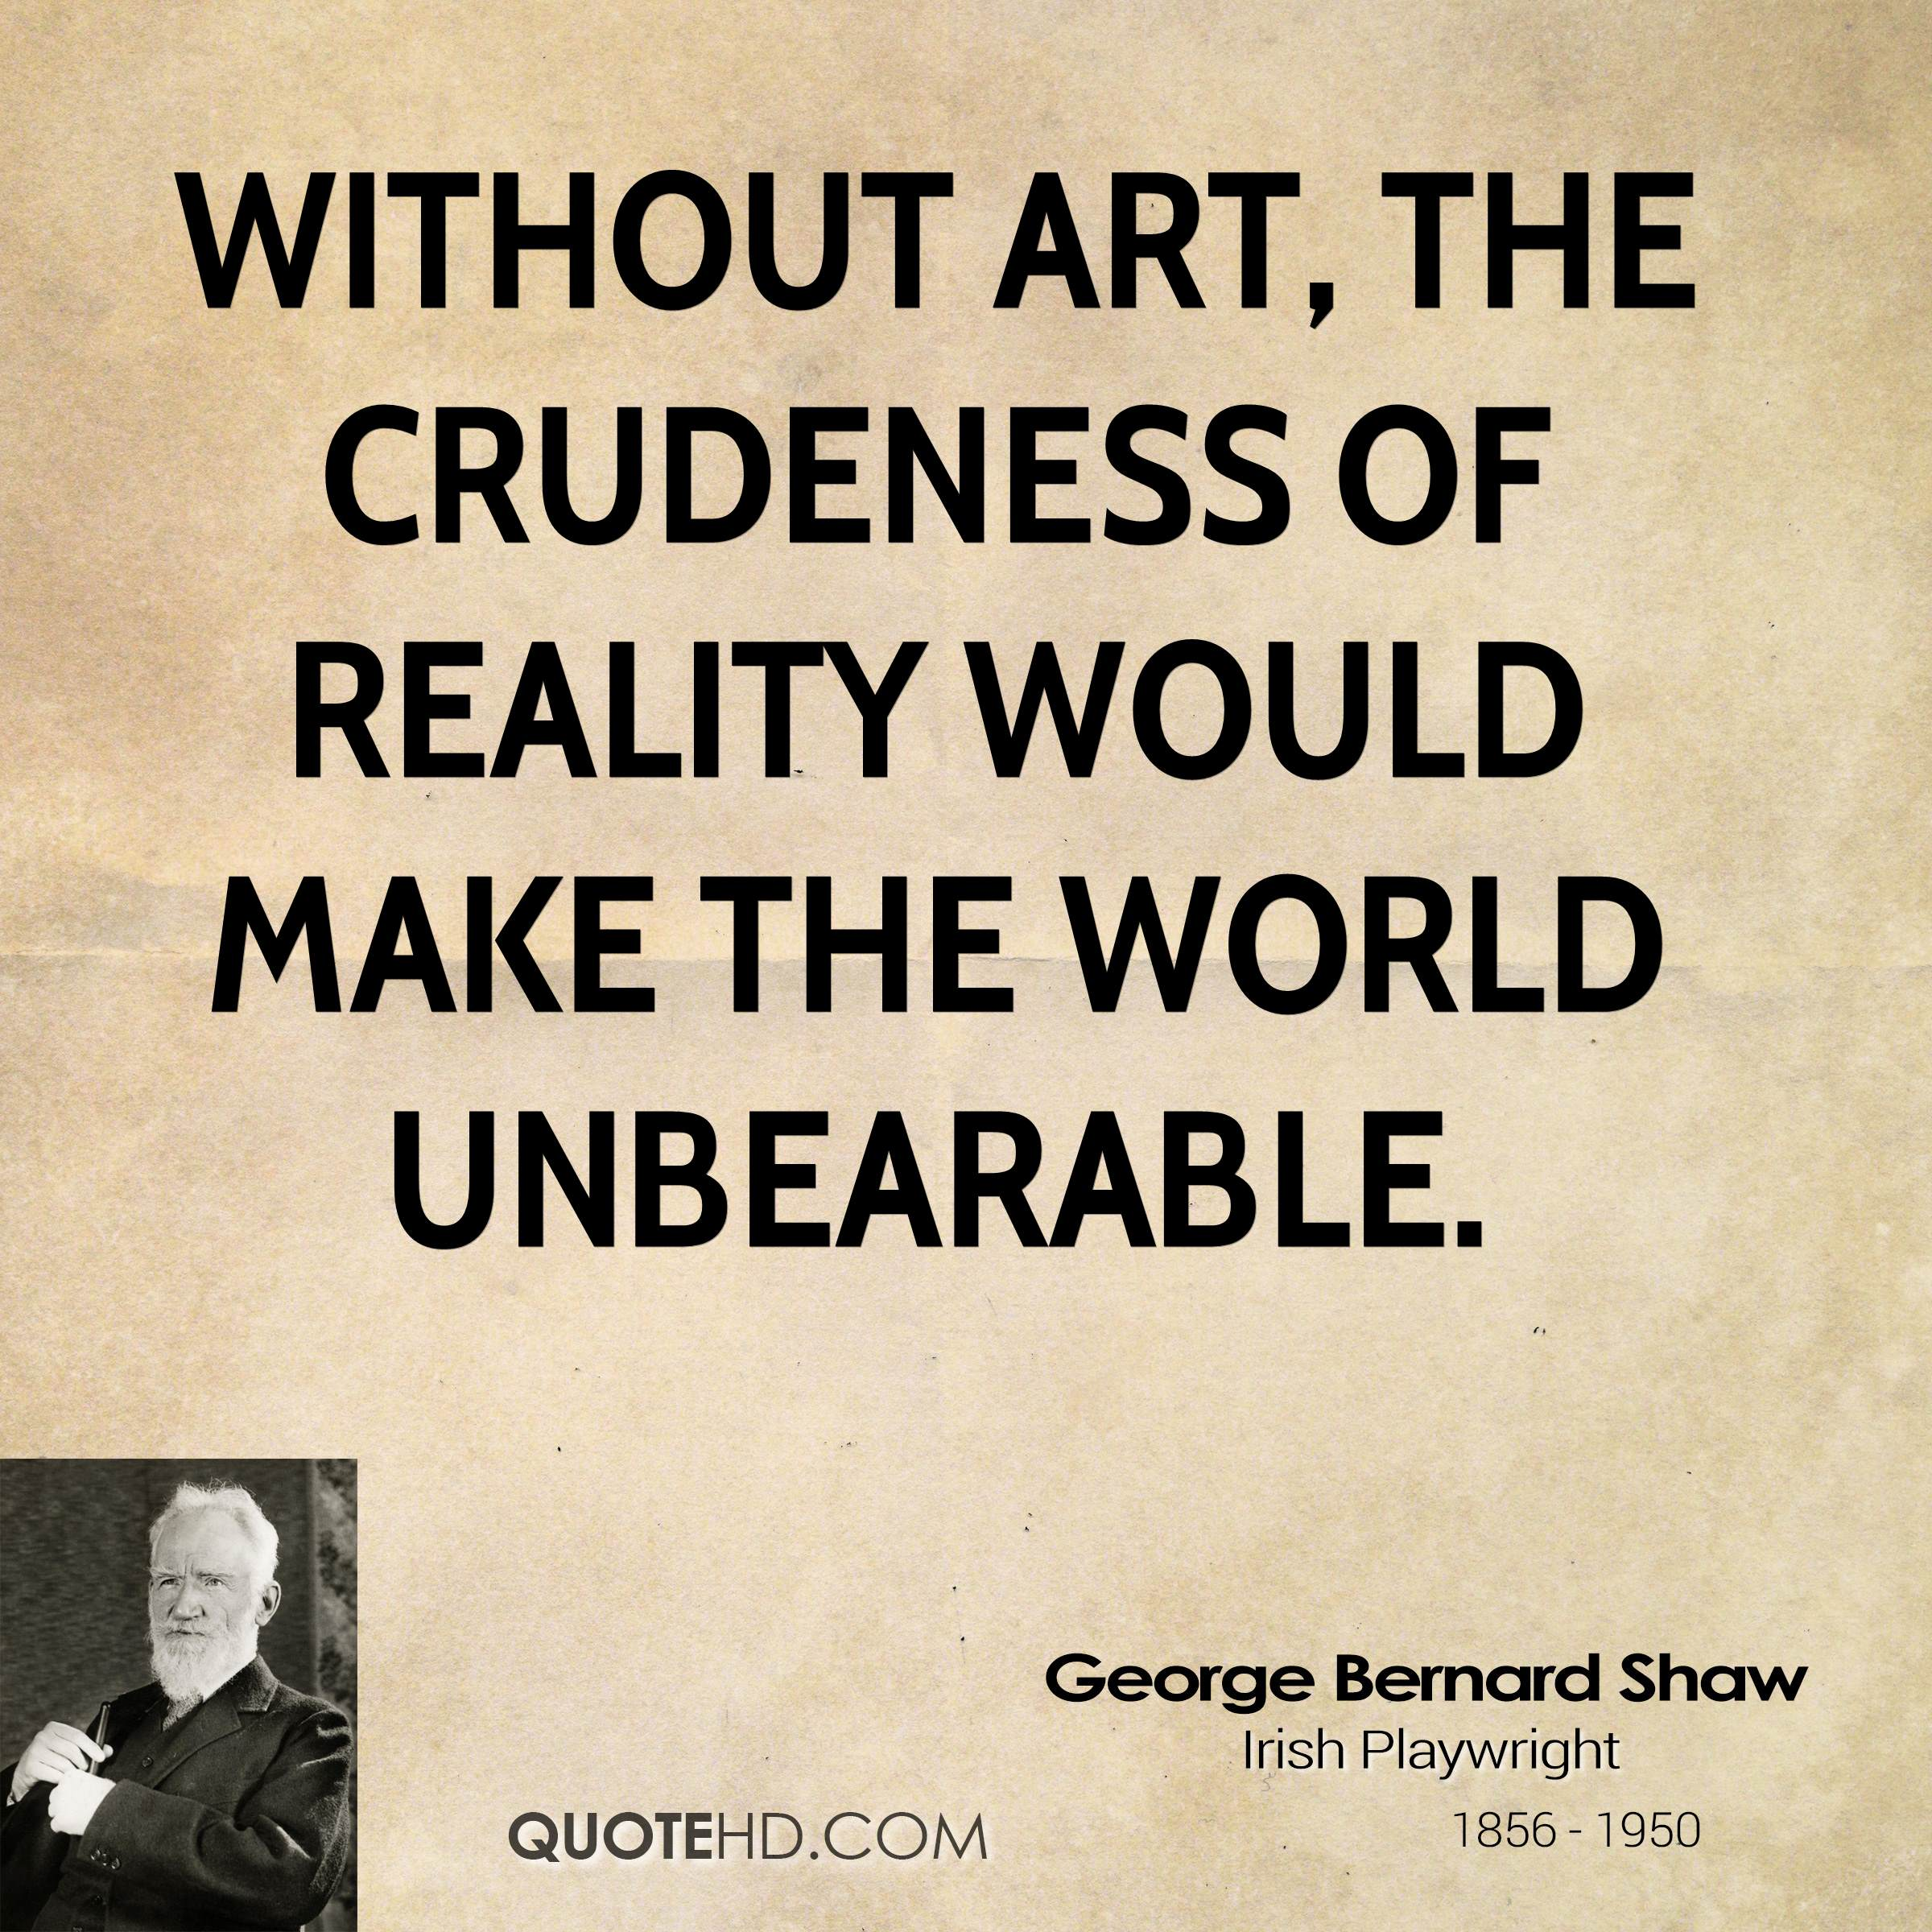 Without art, the crudeness of reality would make the world unbearable. George Bernard Shaw